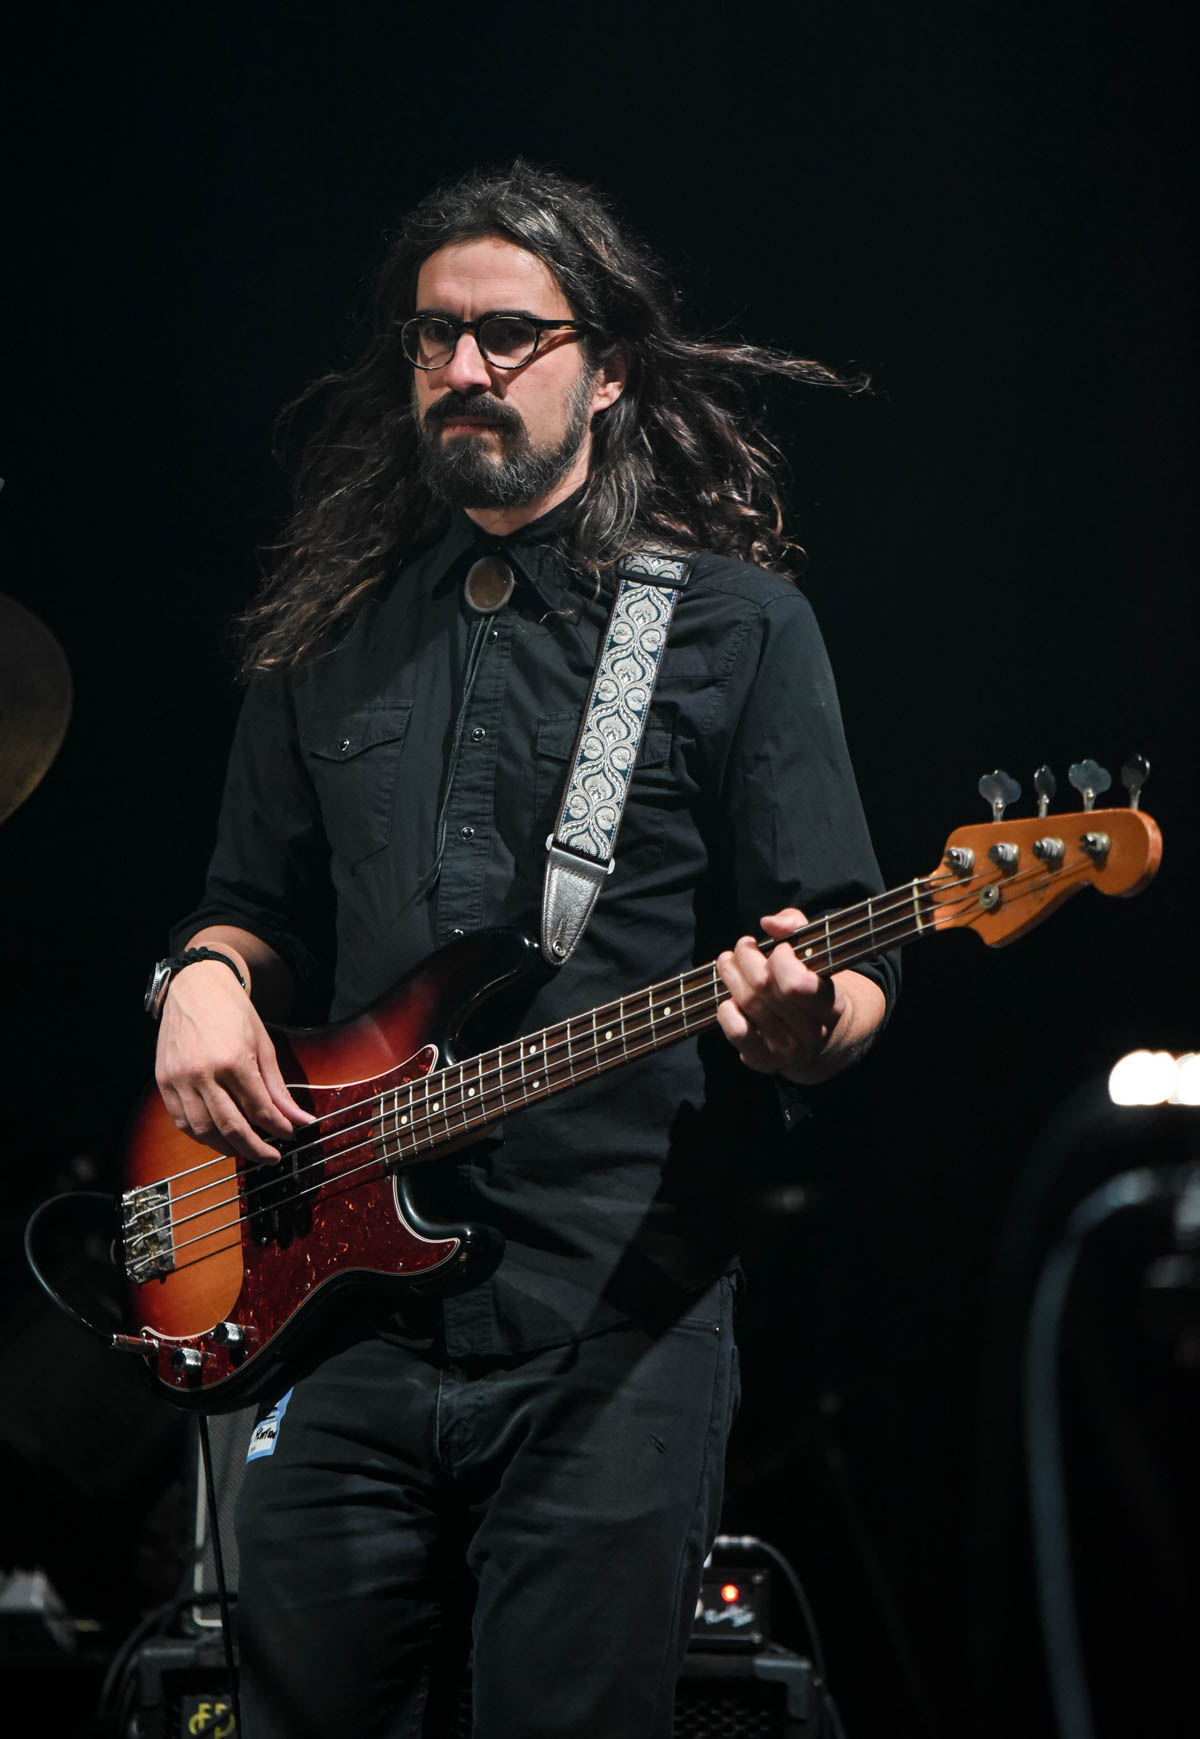 Jeff Leonard  of Fruition | Red Rocks Amphitheatre | Morrison, CO. | 09/05/2019 | Photos: ©Pix Meyers 2019